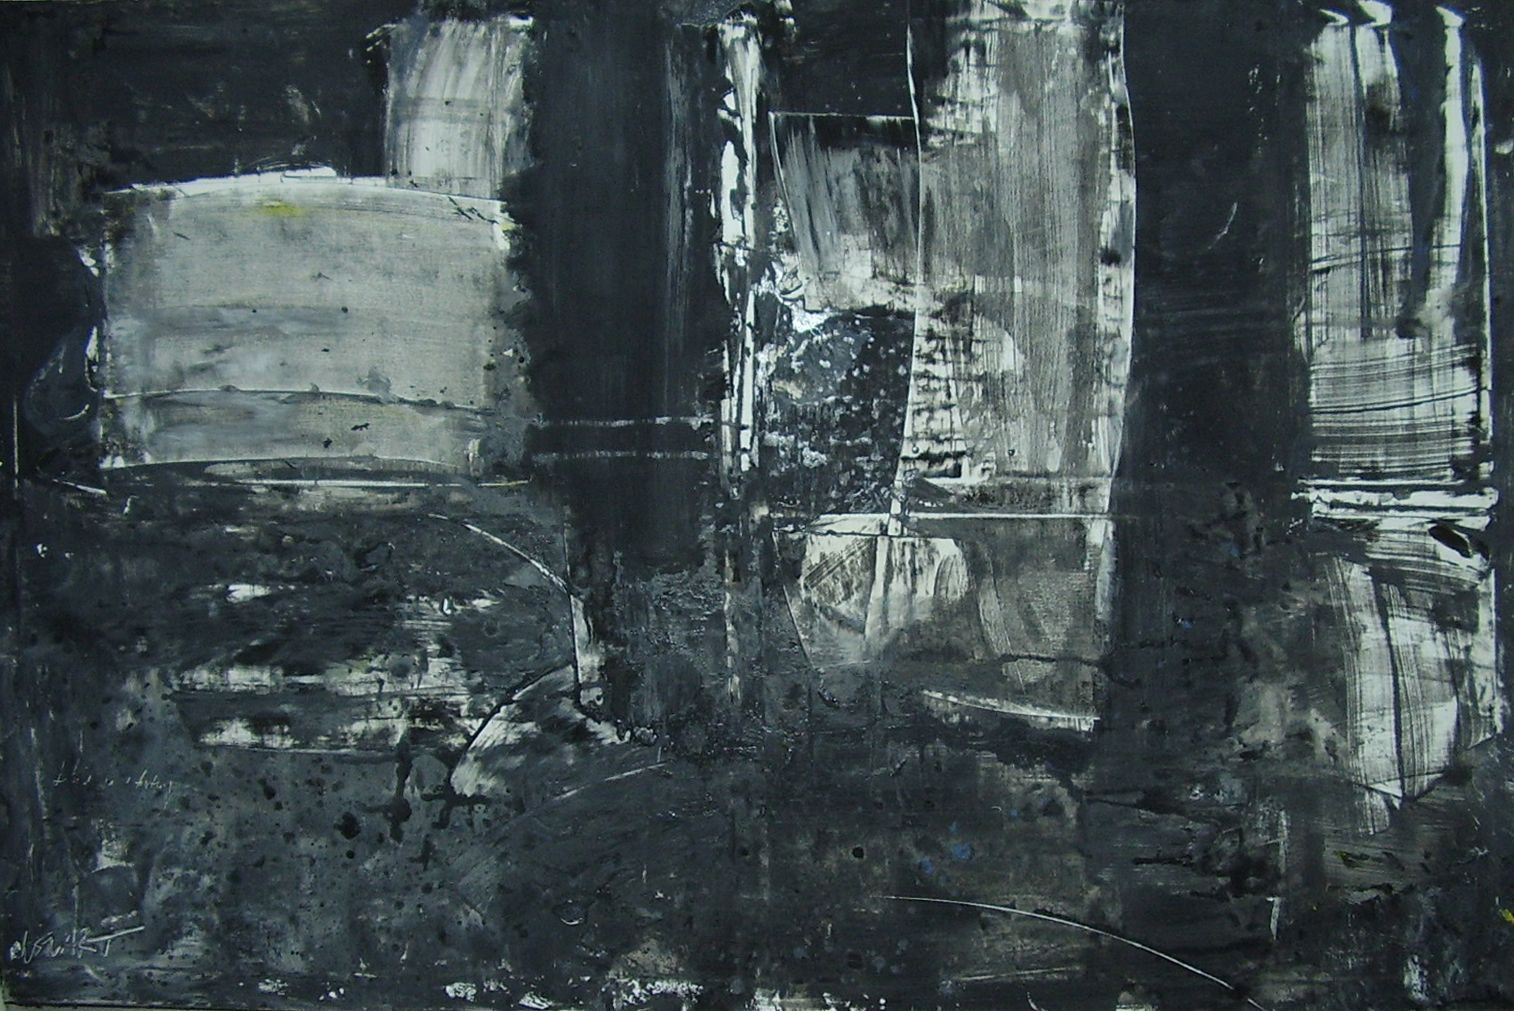 Untitled (Factory), 2007